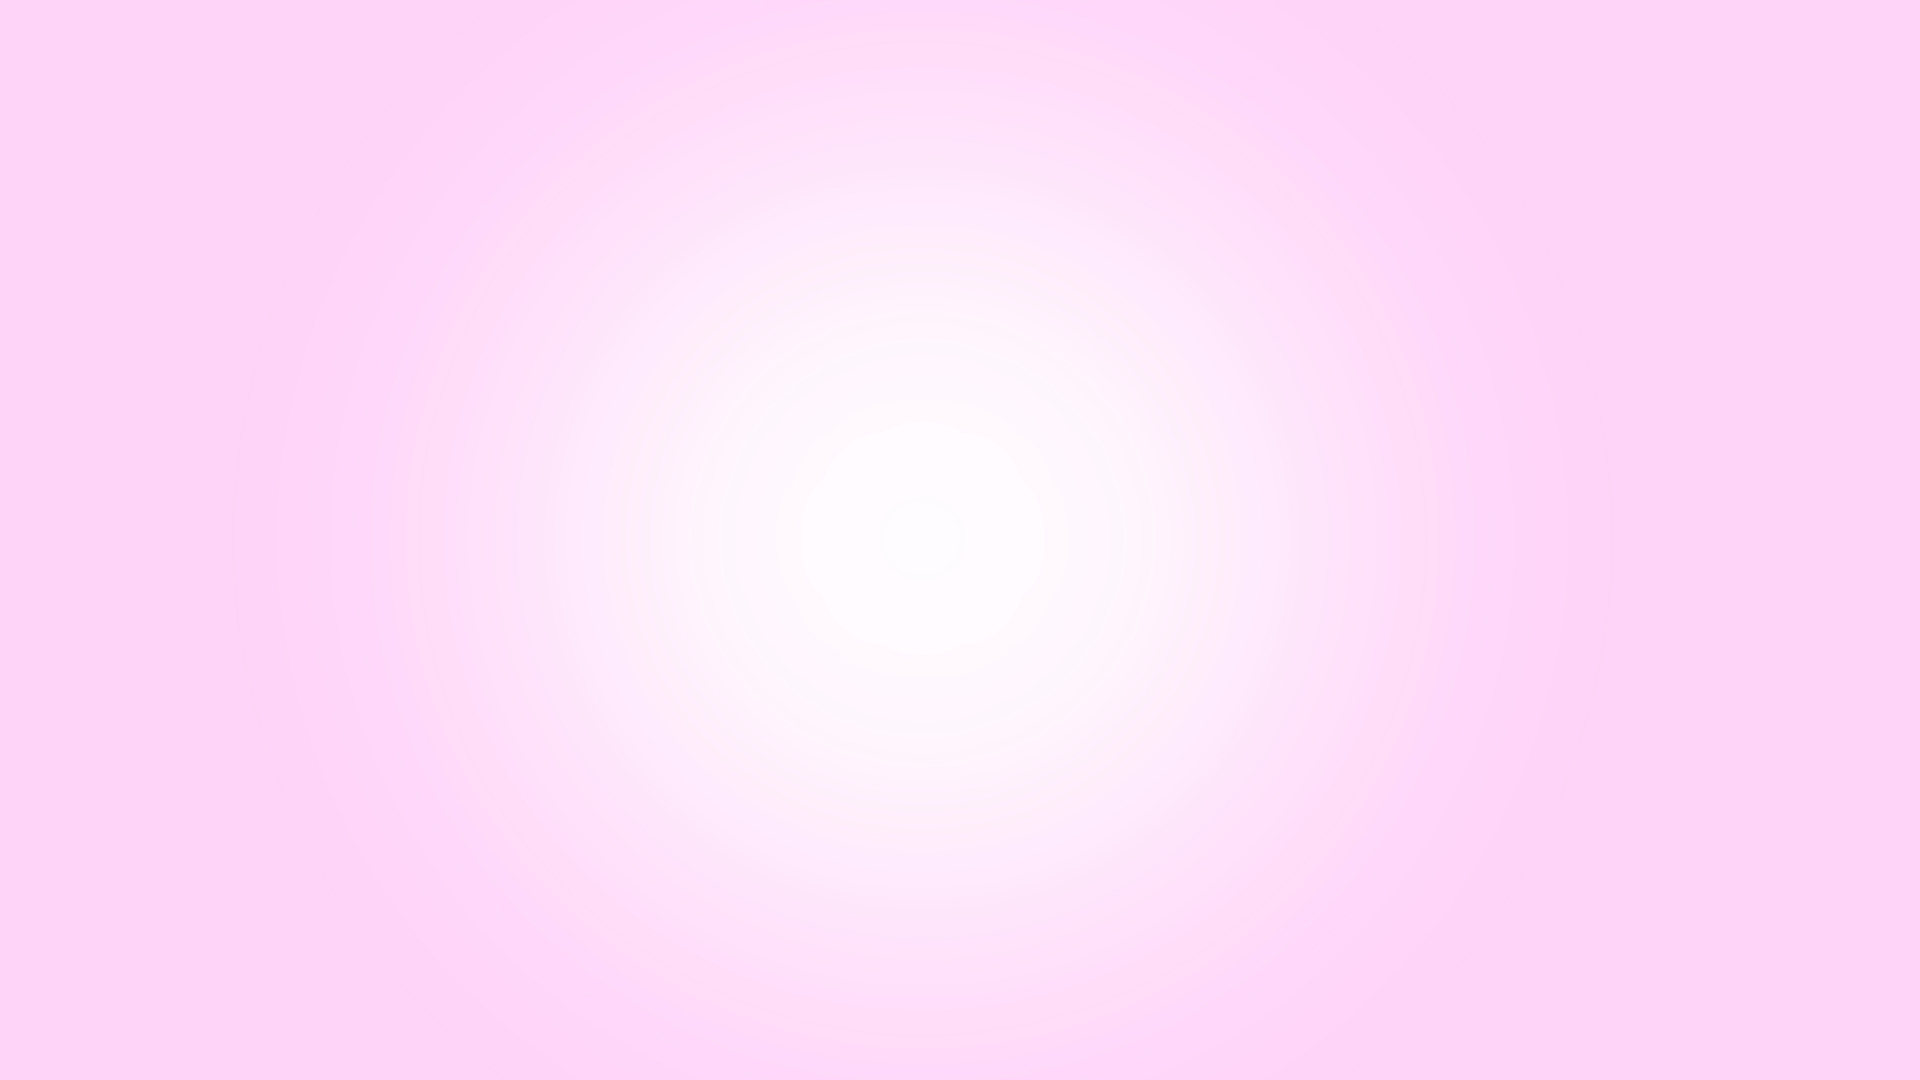 Light Pink Wallpapers HD 1920x1080